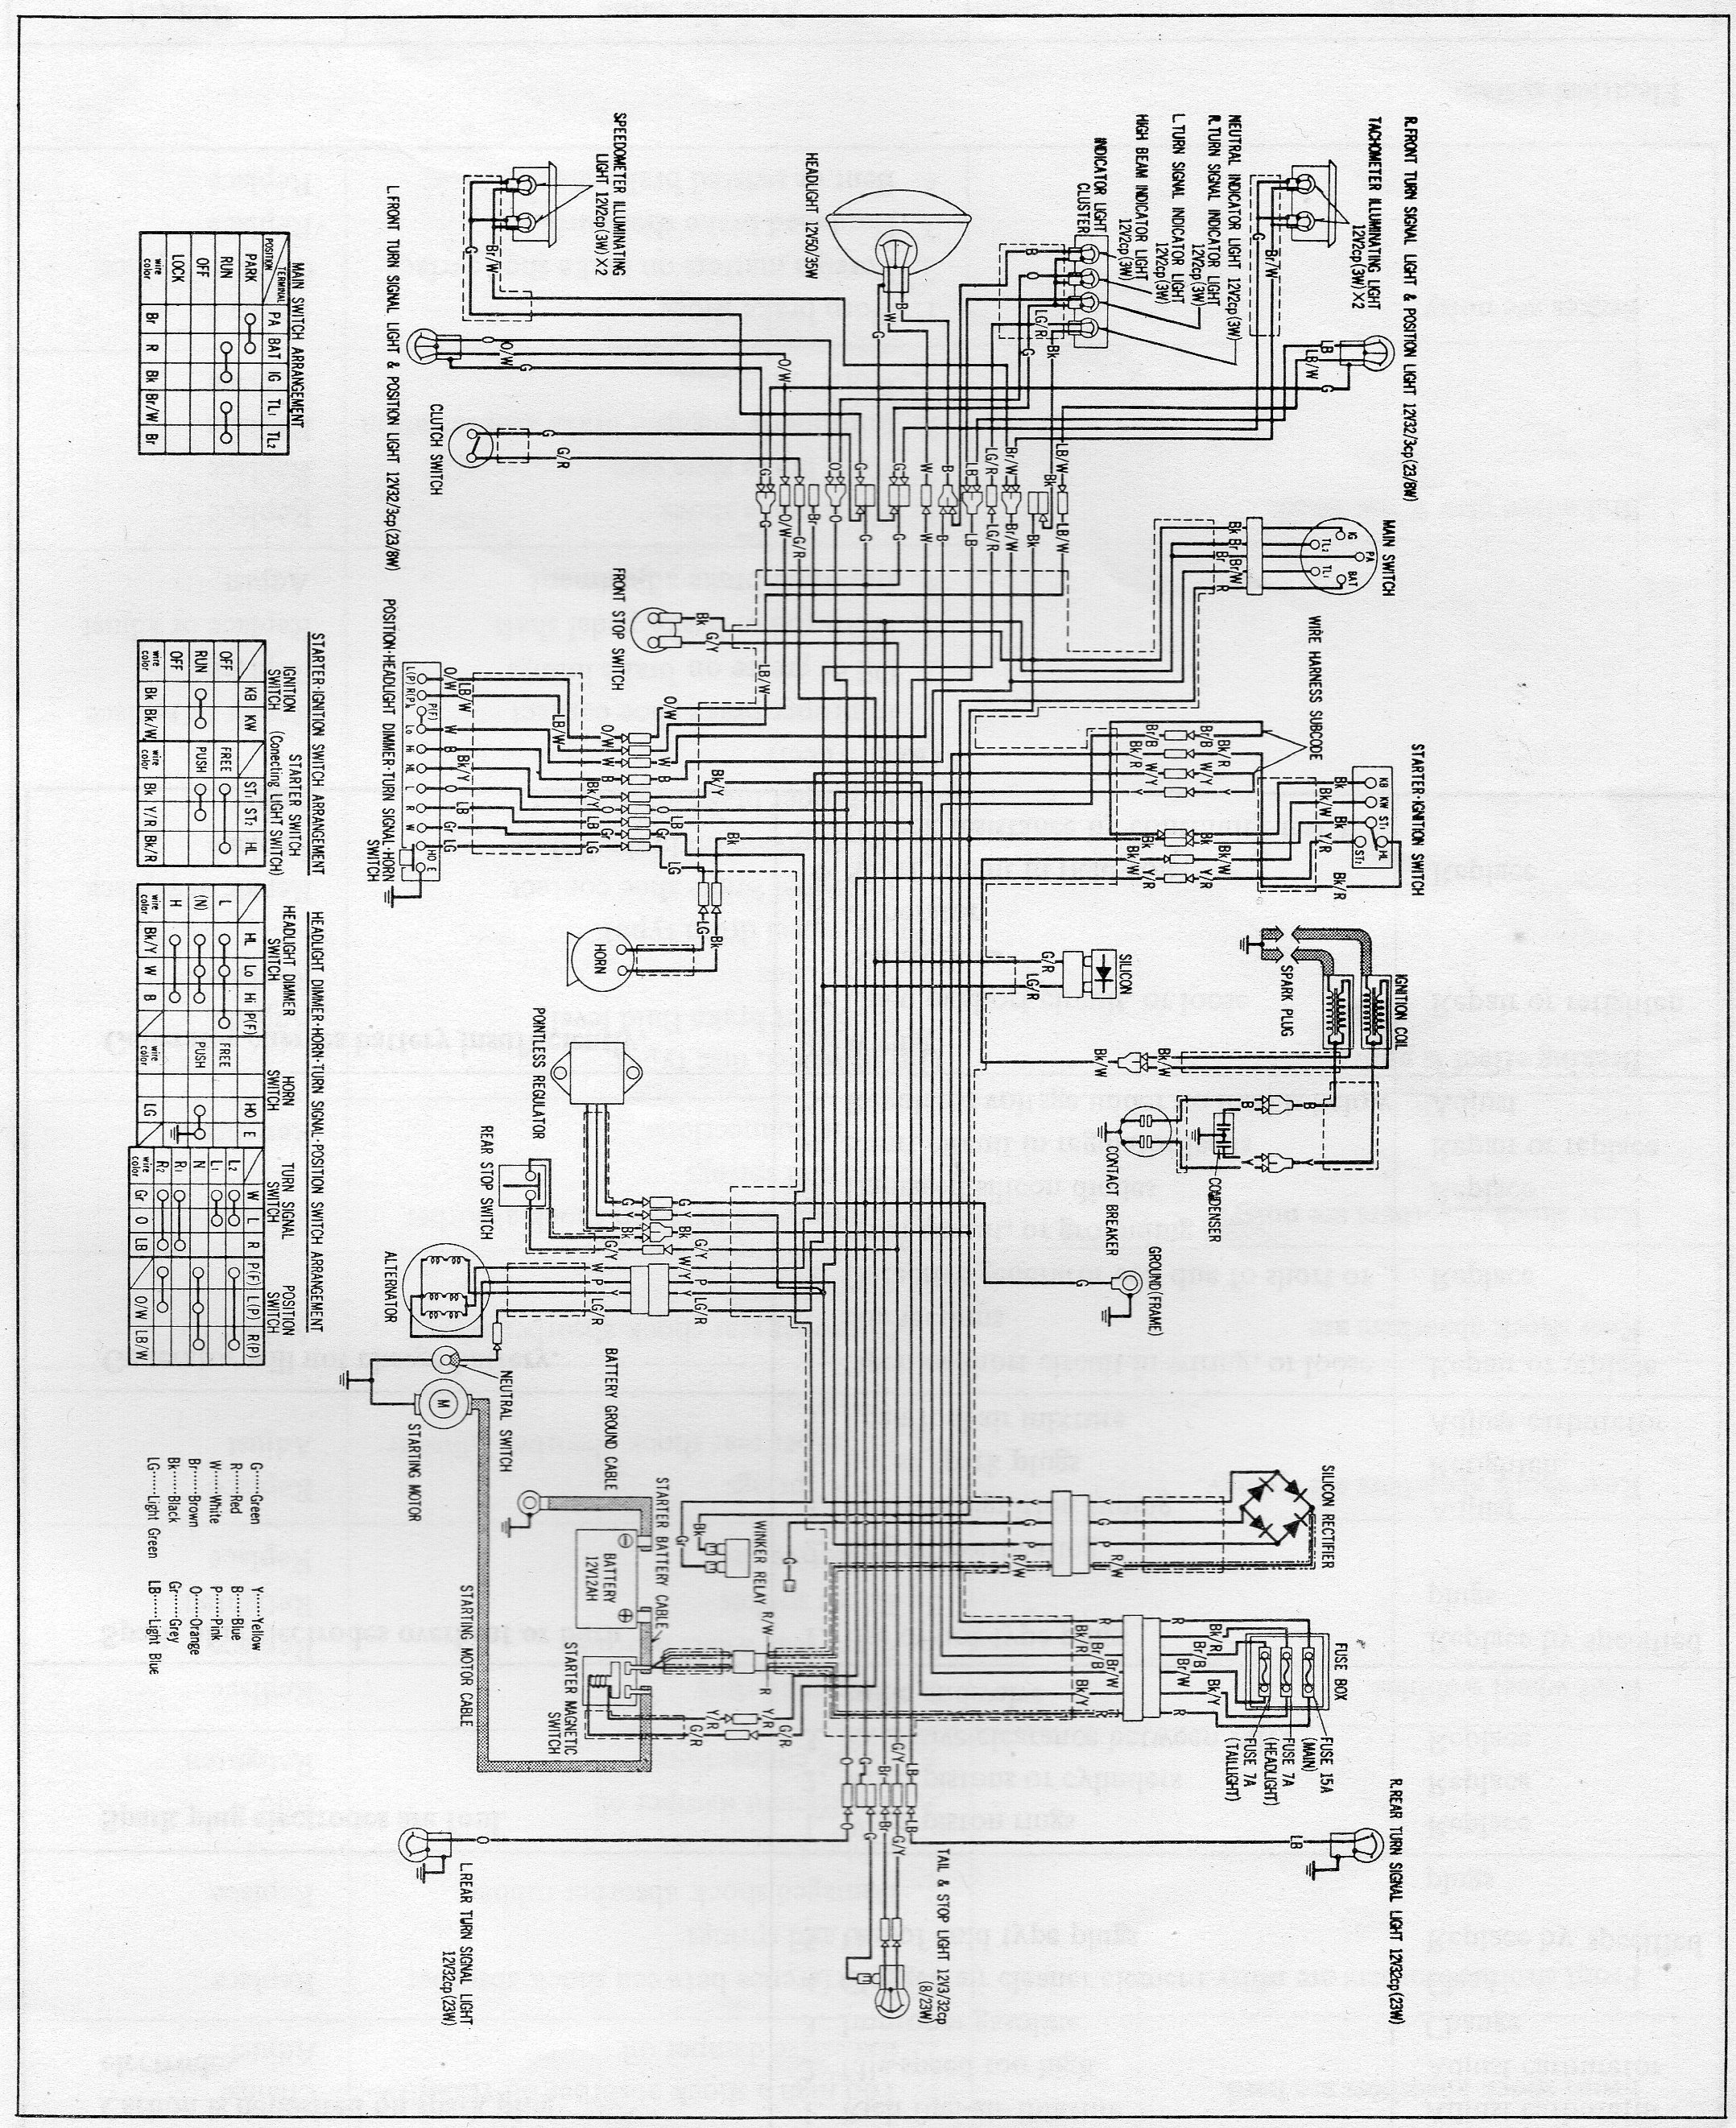 Control 4 Wiring Diagram from www.hondatwins.net